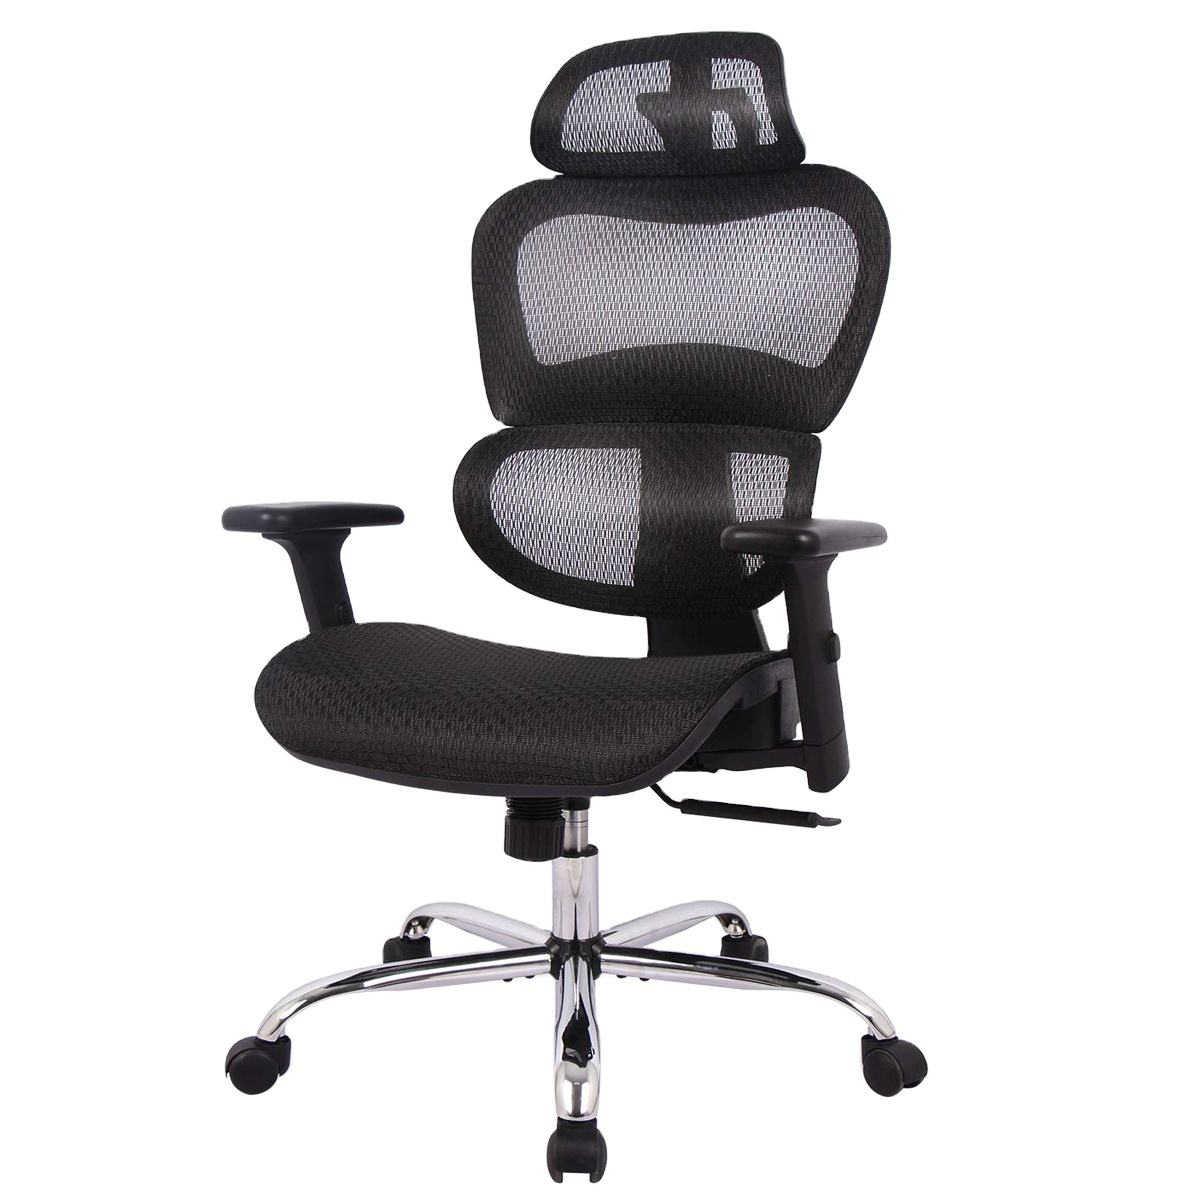 USA STOCK Amazon Hot Selling ergonomic wholesale mesh office chair for home/office use 4 color selective